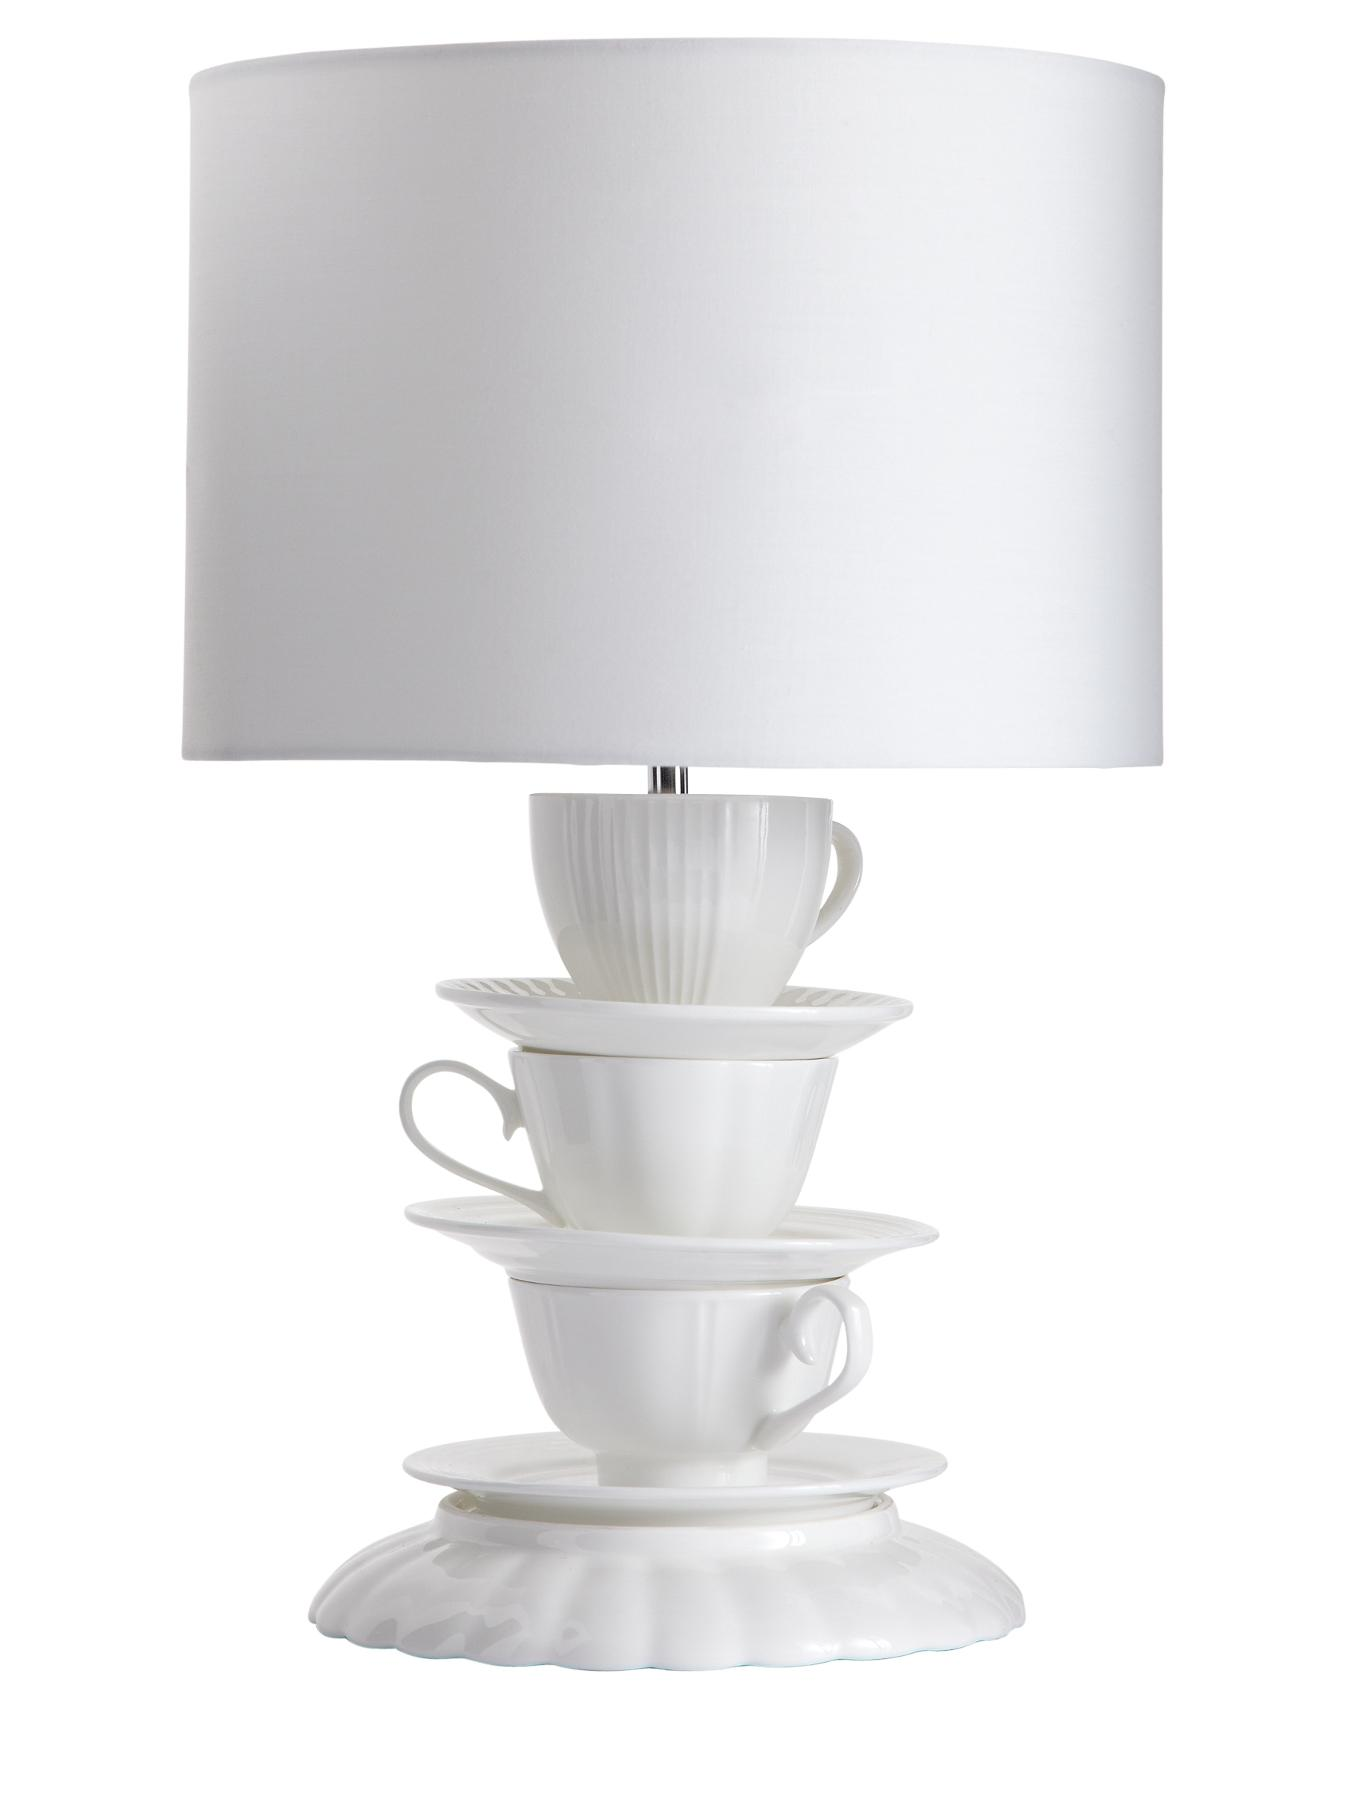 Daisy Teacup Table Lamp - White